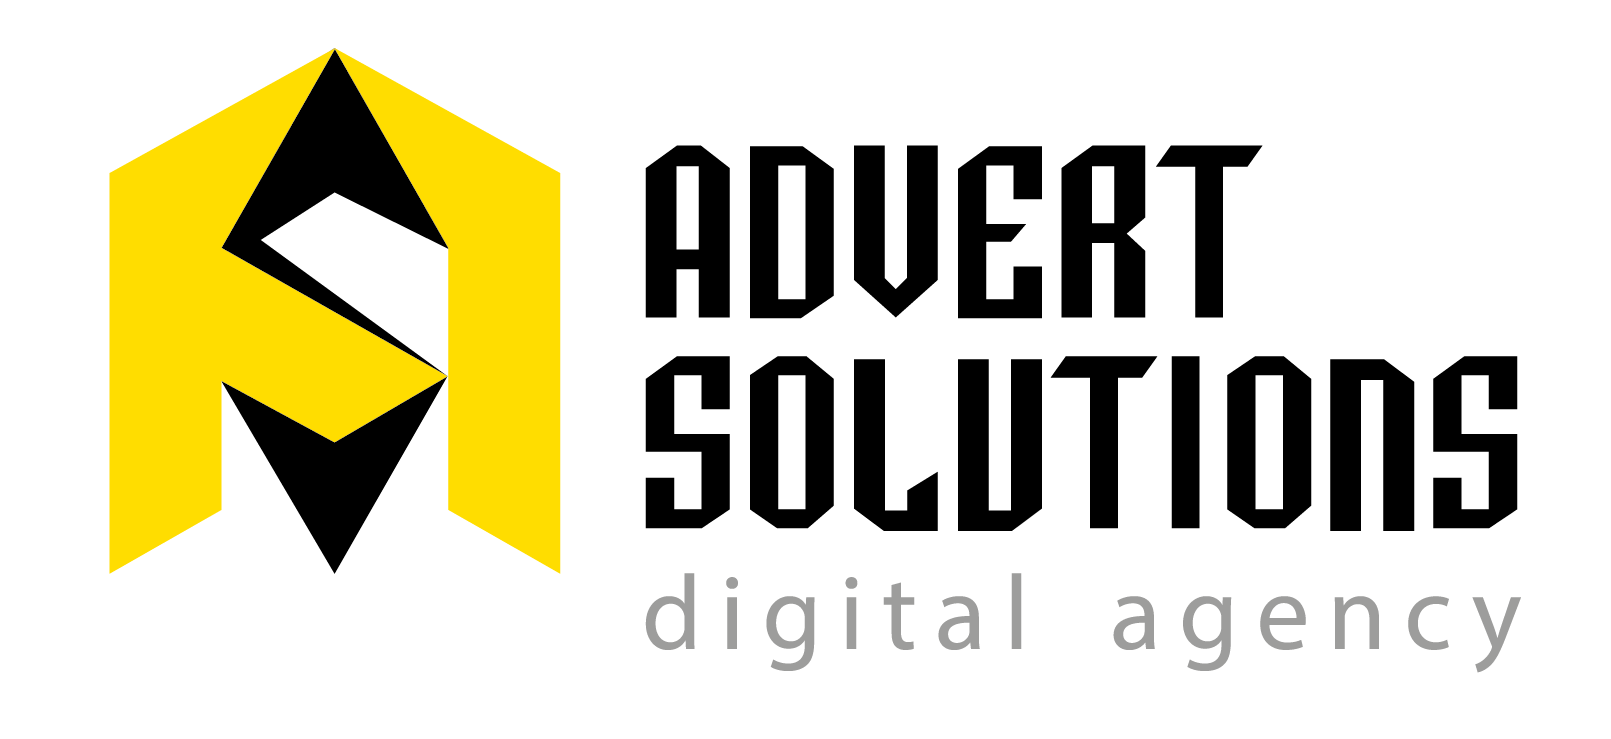 AdvertSolutions